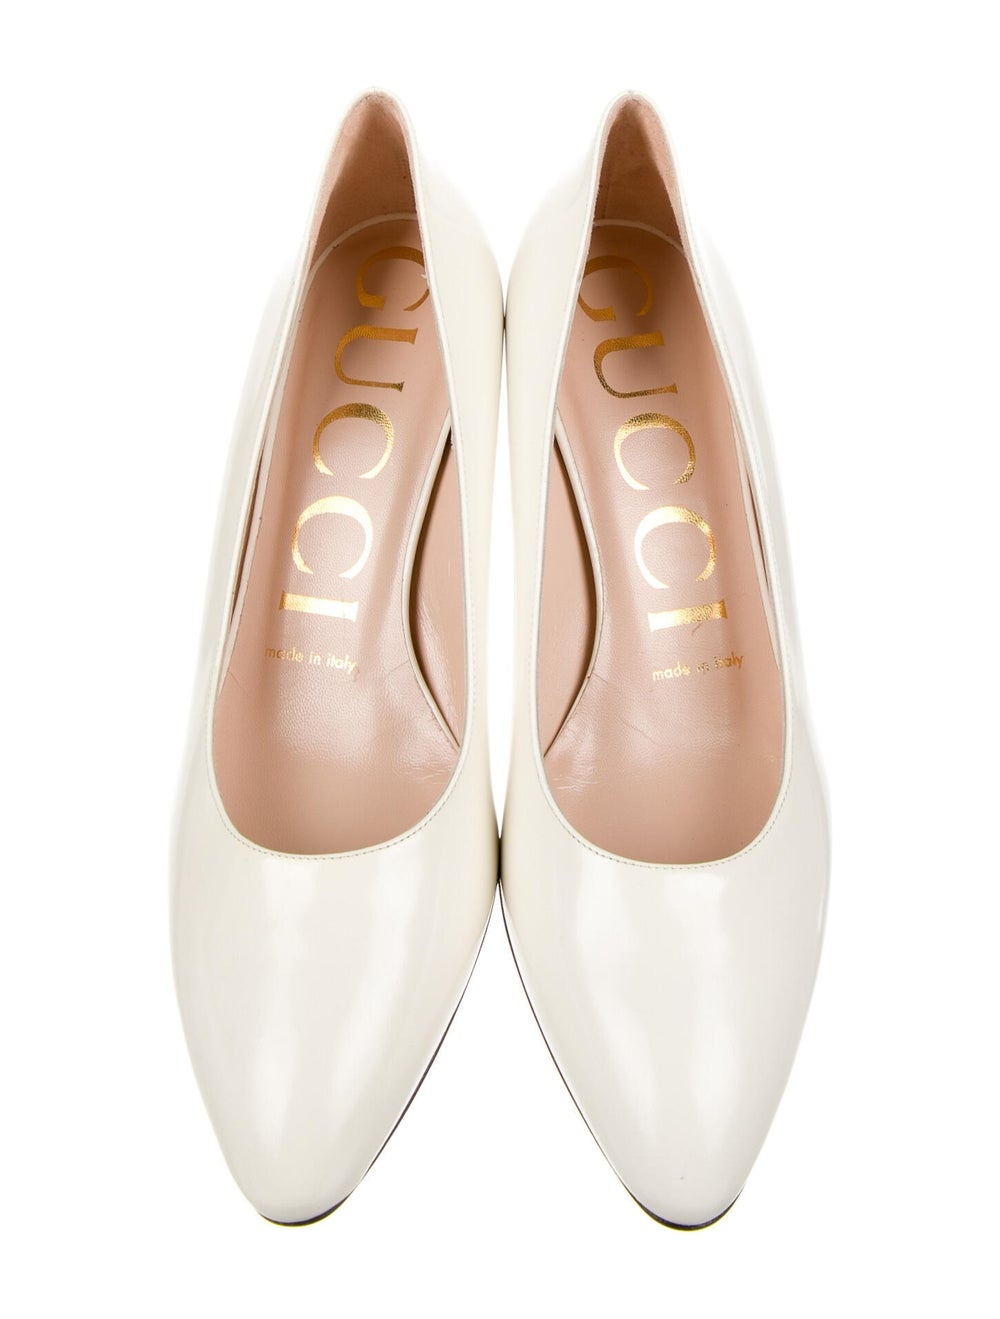 Gucci Leather Crystal Embellishments Pumps - image 3